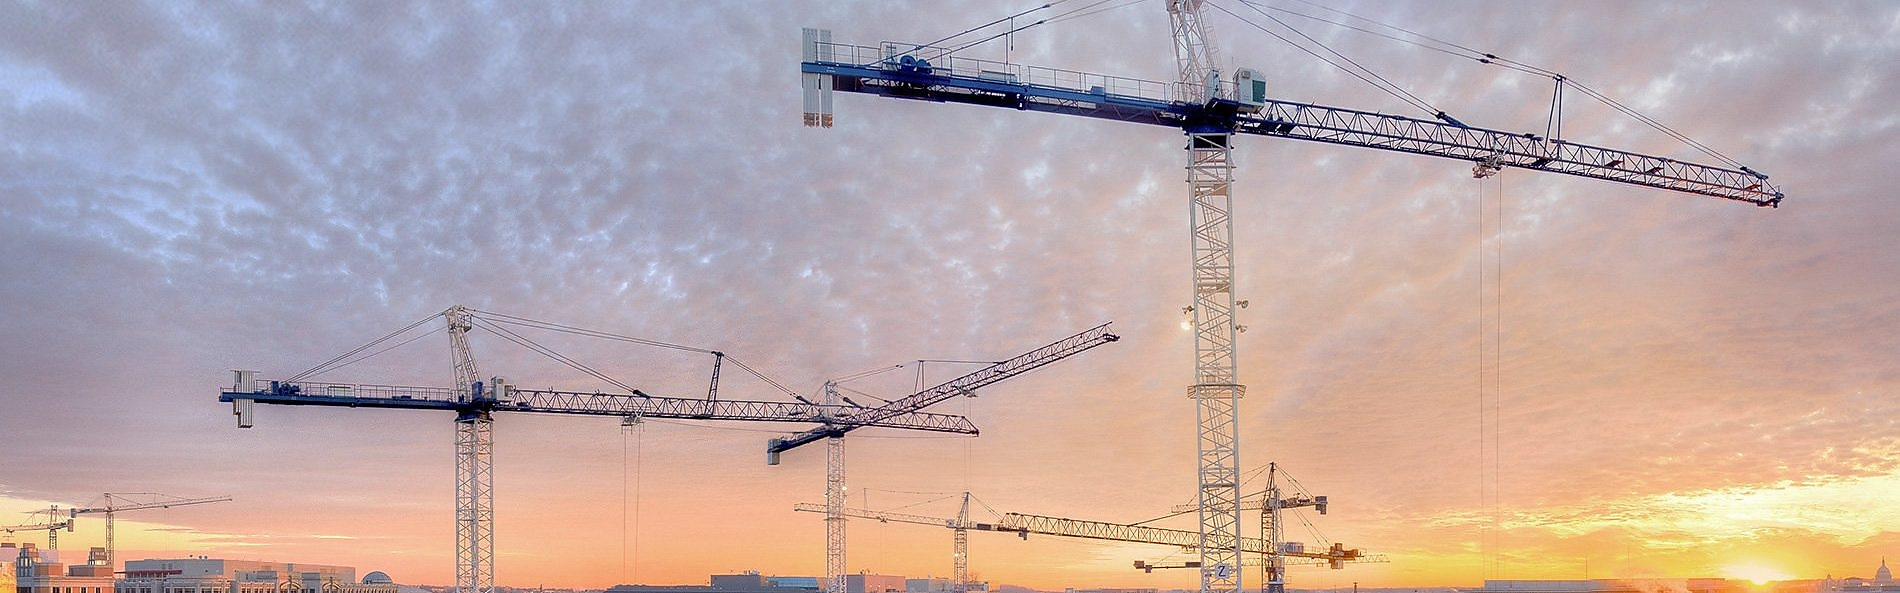 three cranes on a building site at dusk